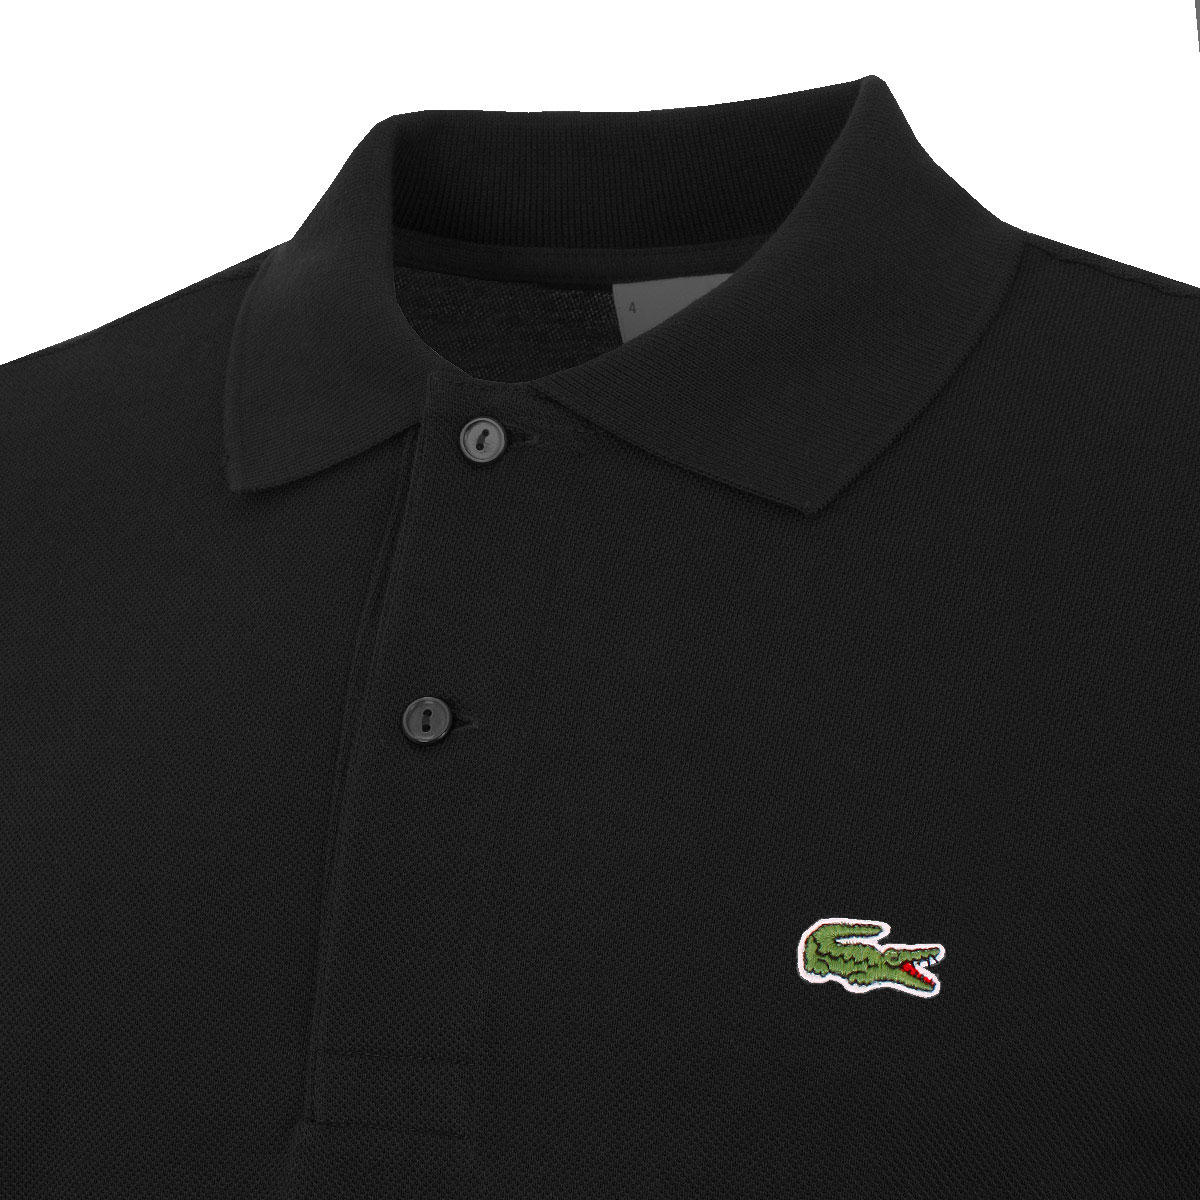 caa700c2543f Lacoste Mens 2018 Classic Cotton L1212 Short Sleeve Polo Shirt